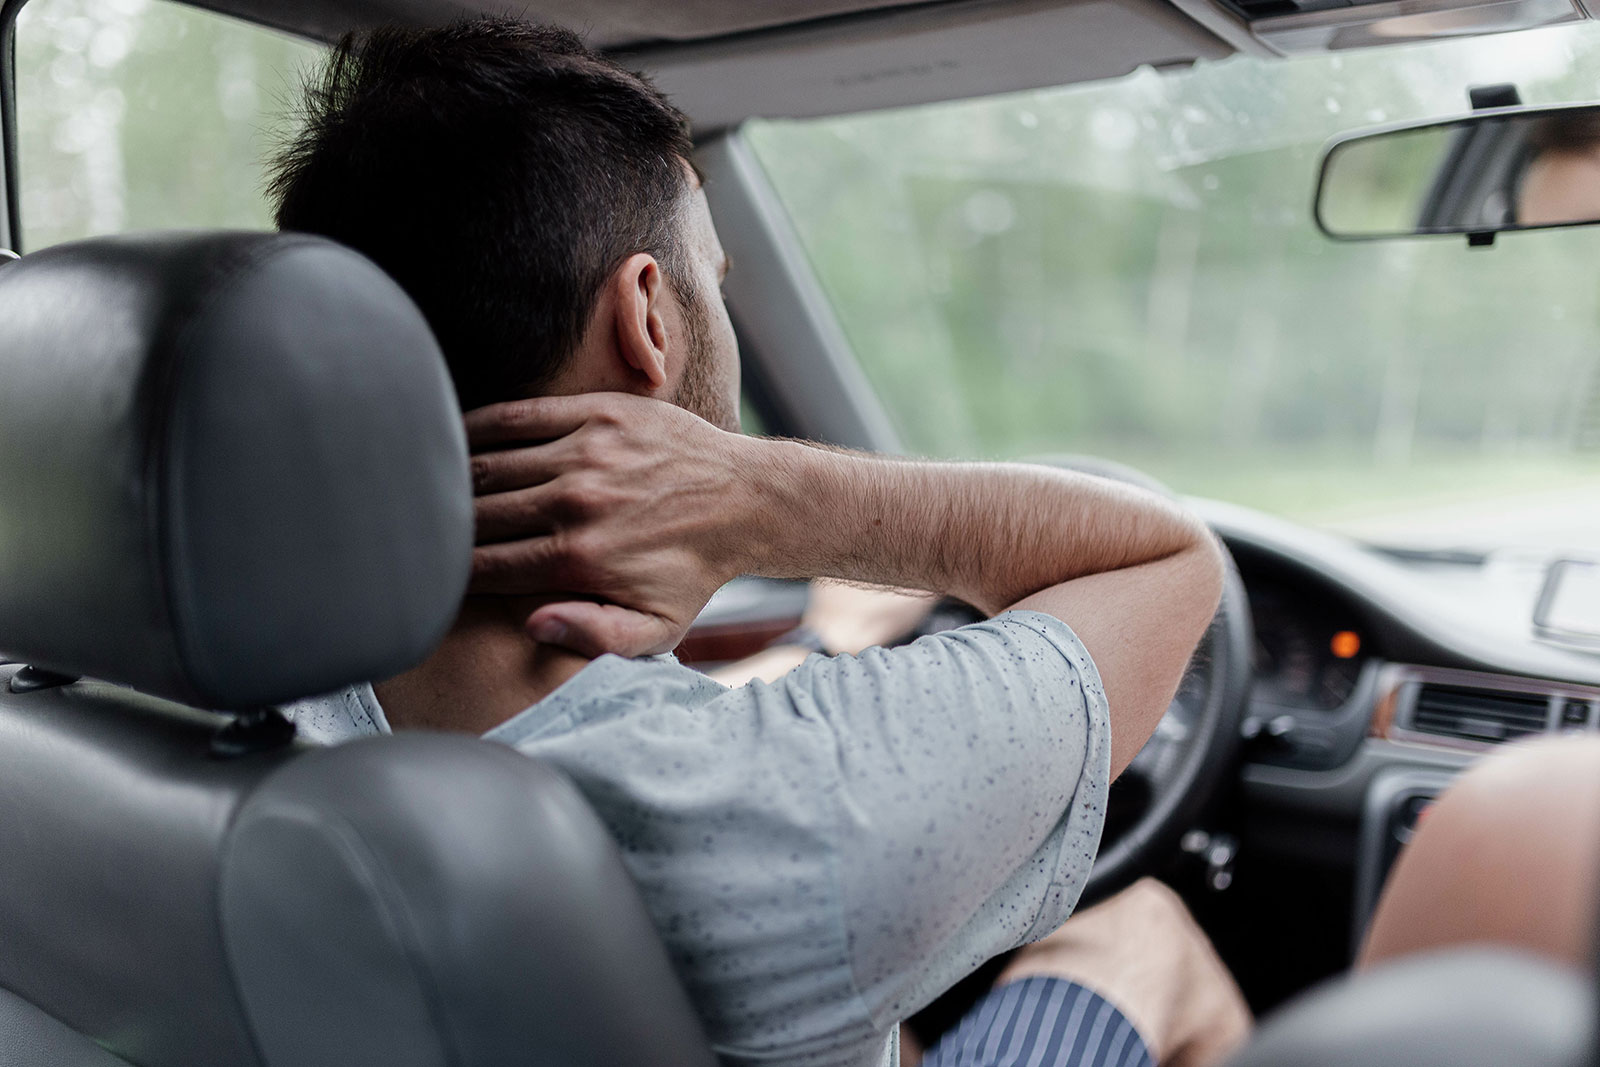 How many of these road trip troubles have you experienced?